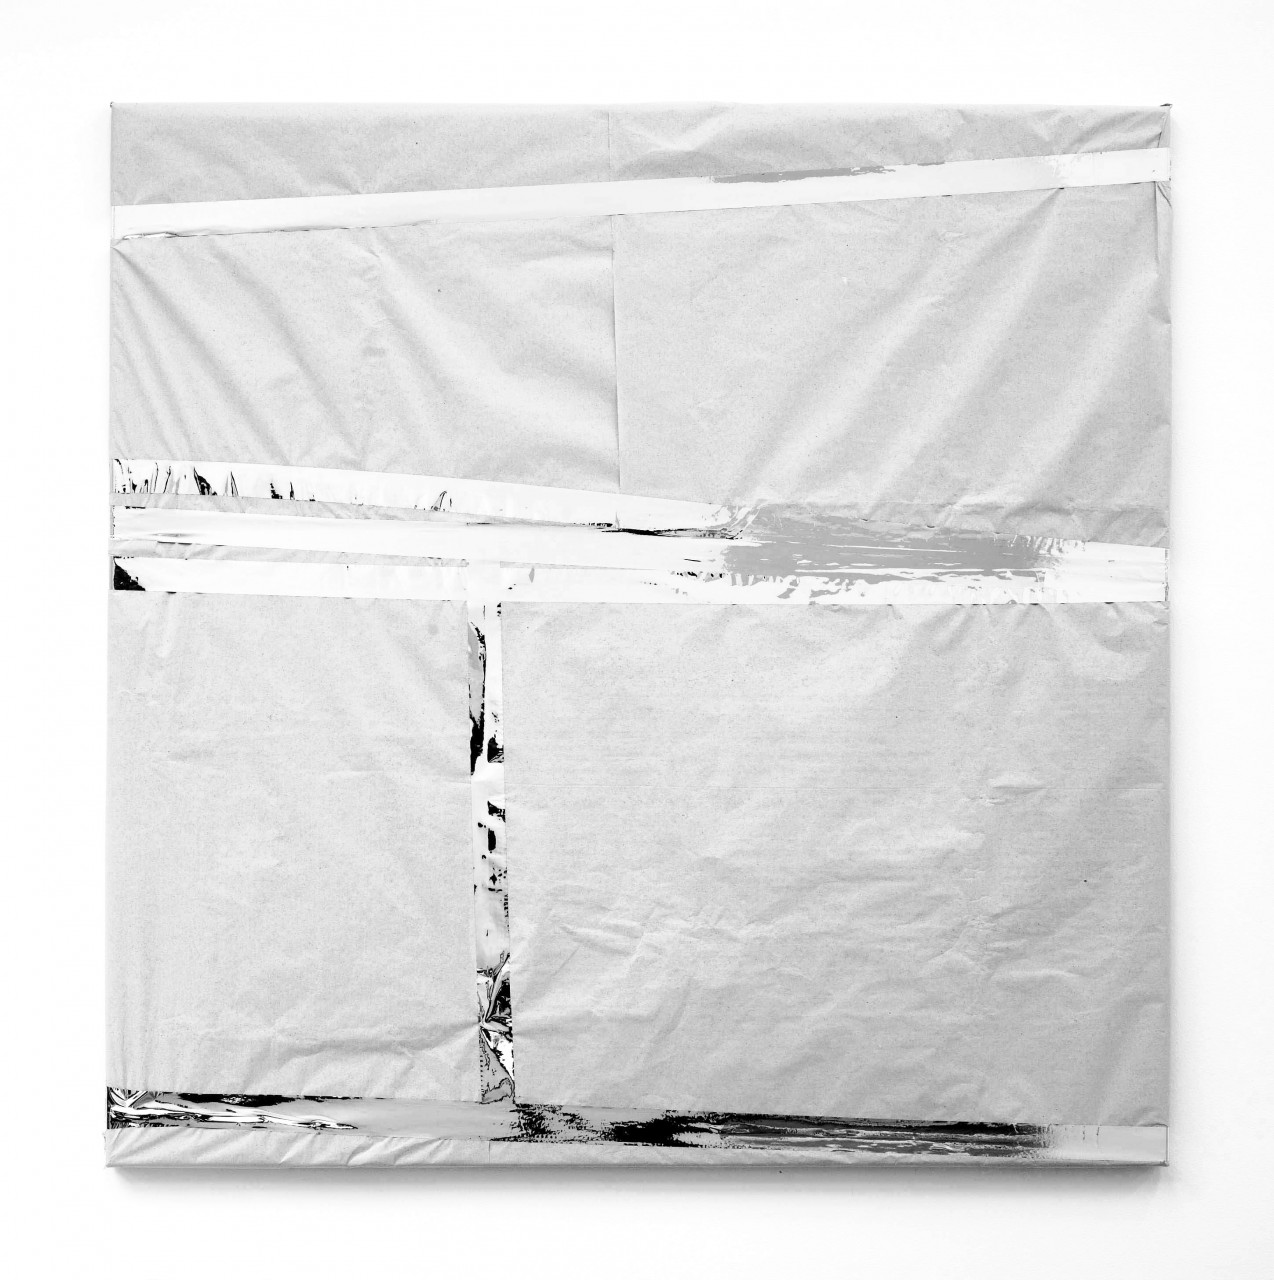 """o.t. (paket)"", 2009, canvas wrapped in paper, 80 x 80 cm"